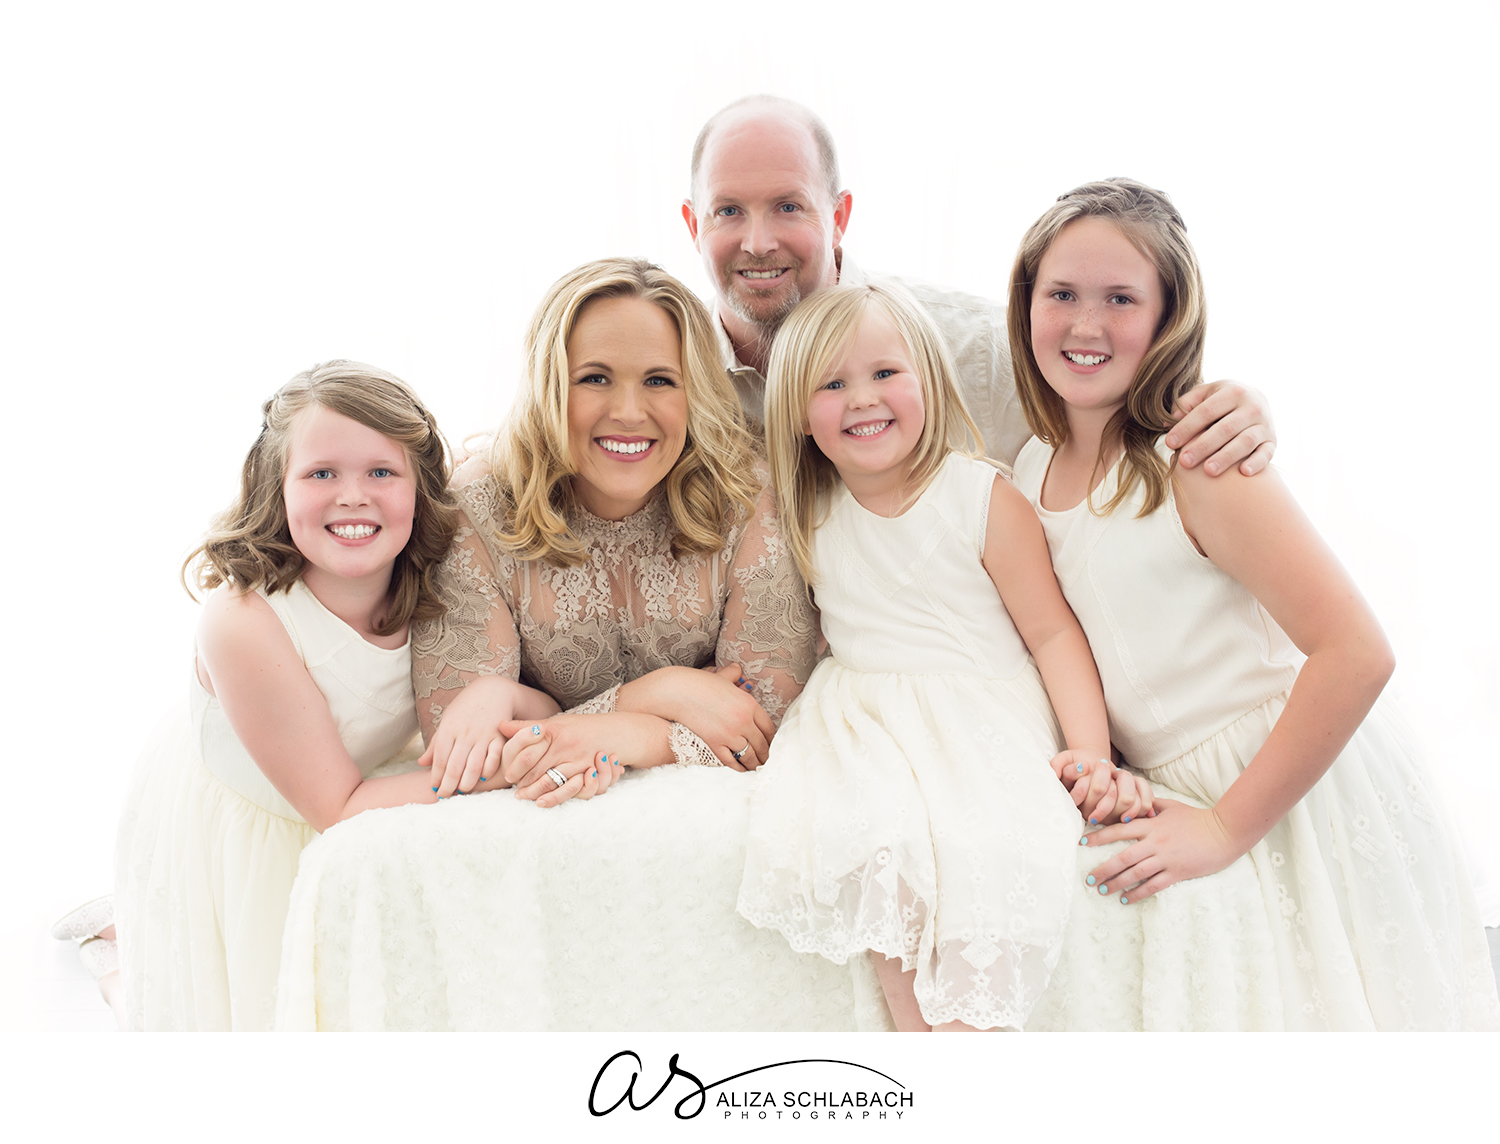 Backlit studio portraiture of a family with three daughters all in white